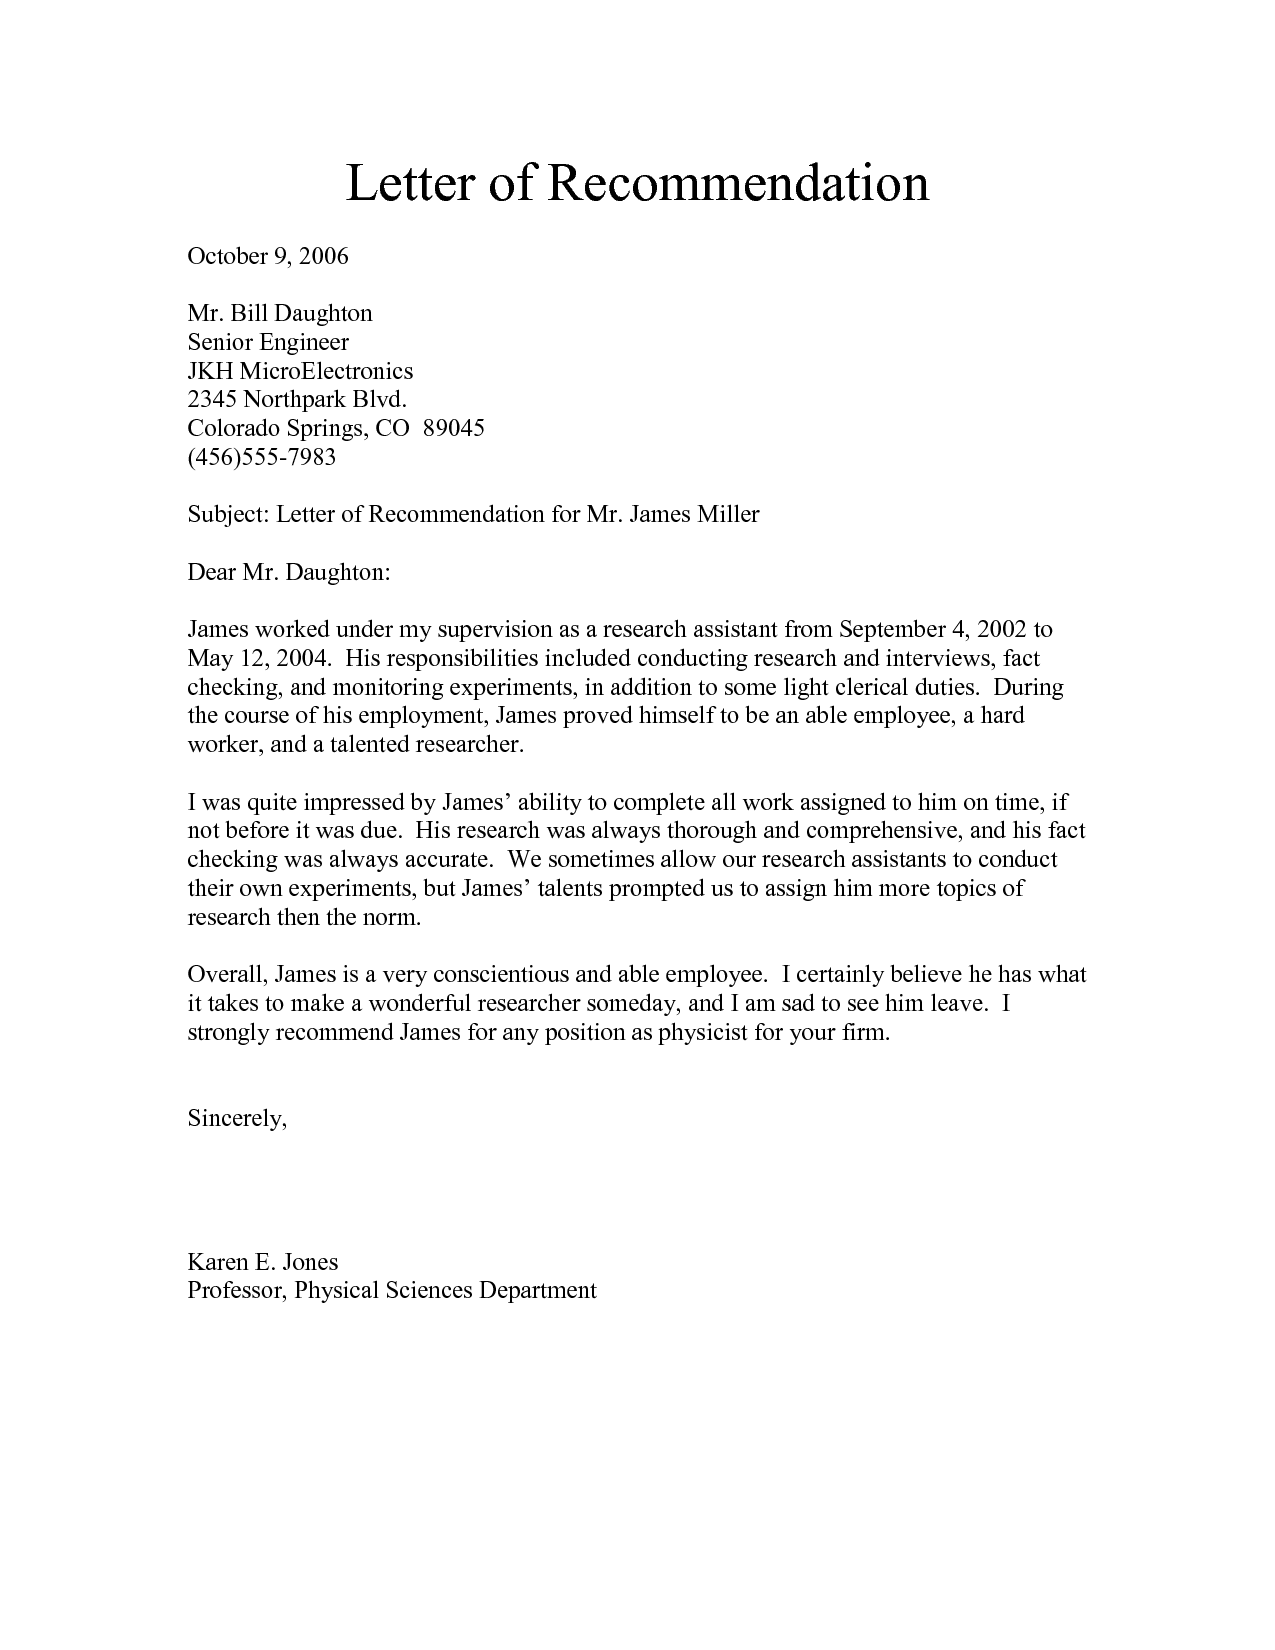 recommendation letter letter of recommendation reference letter letter of reference reference letter